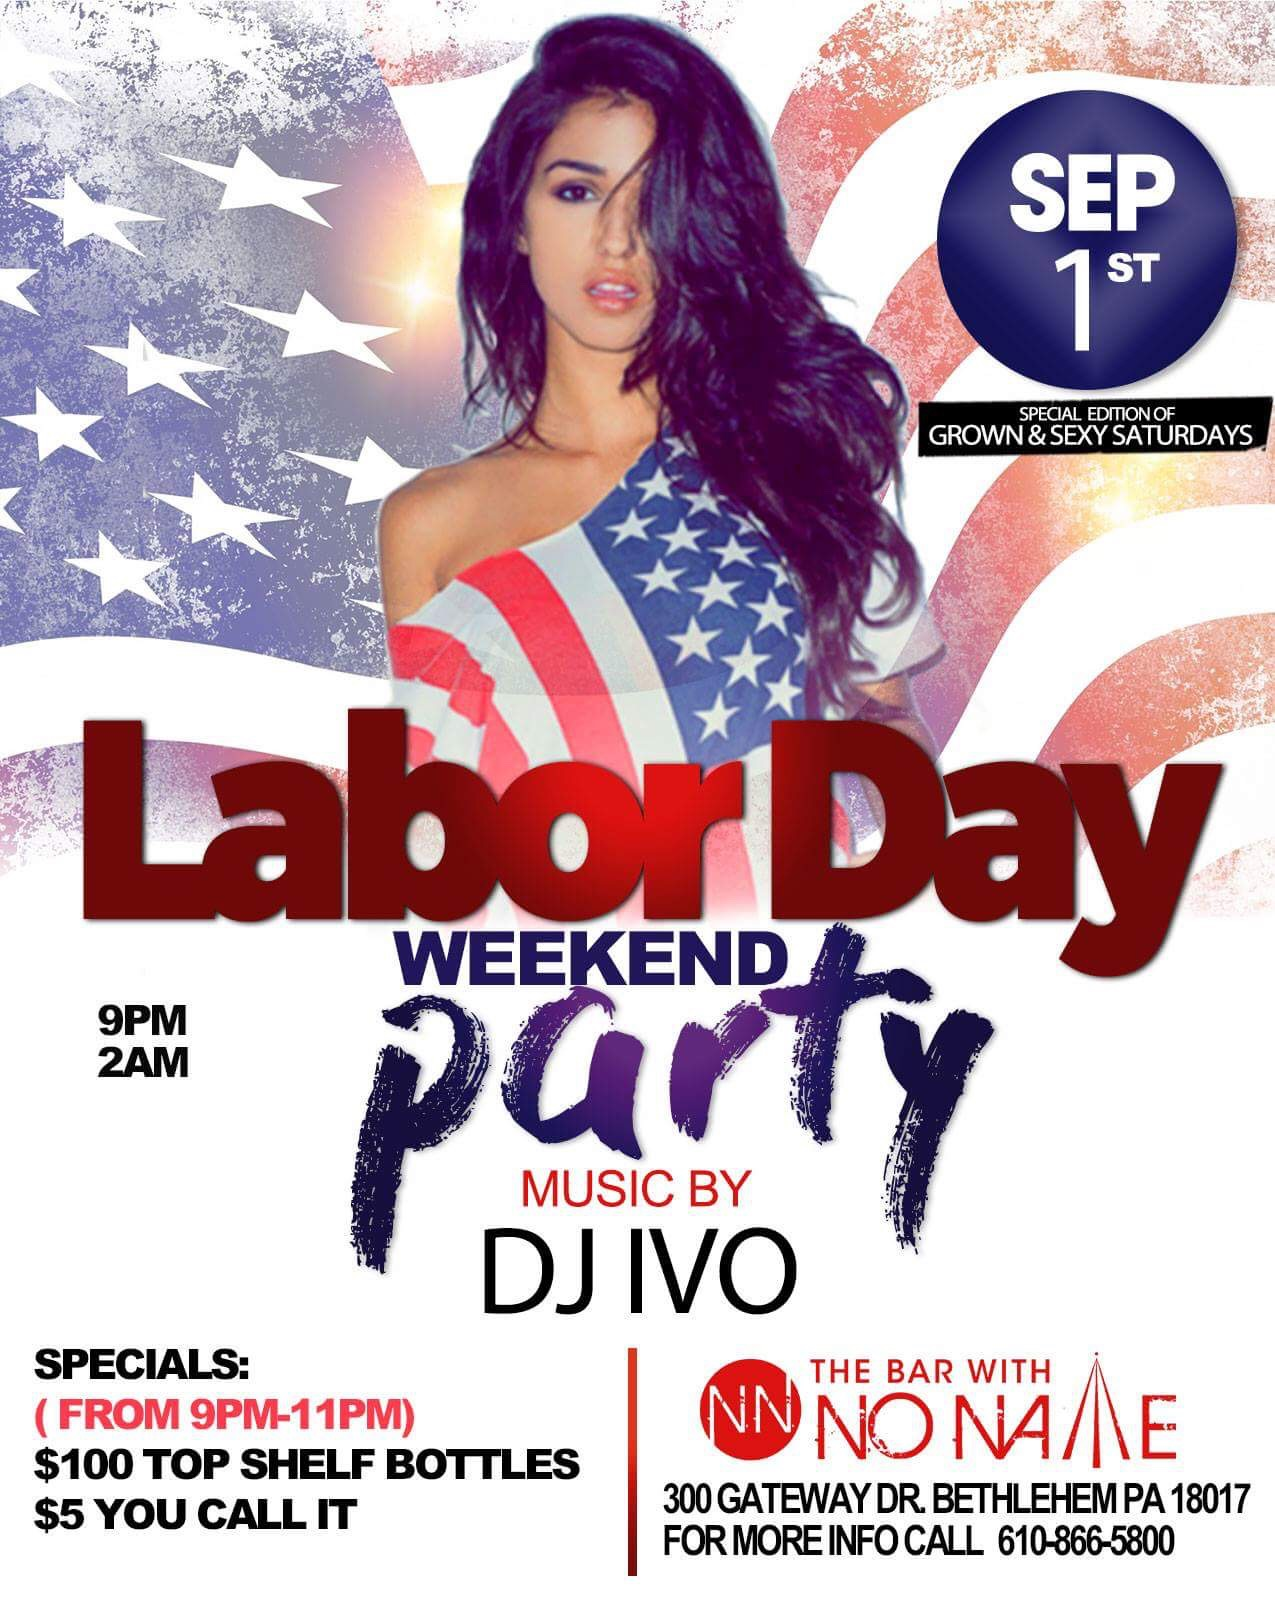 Labor Day Party Weekend